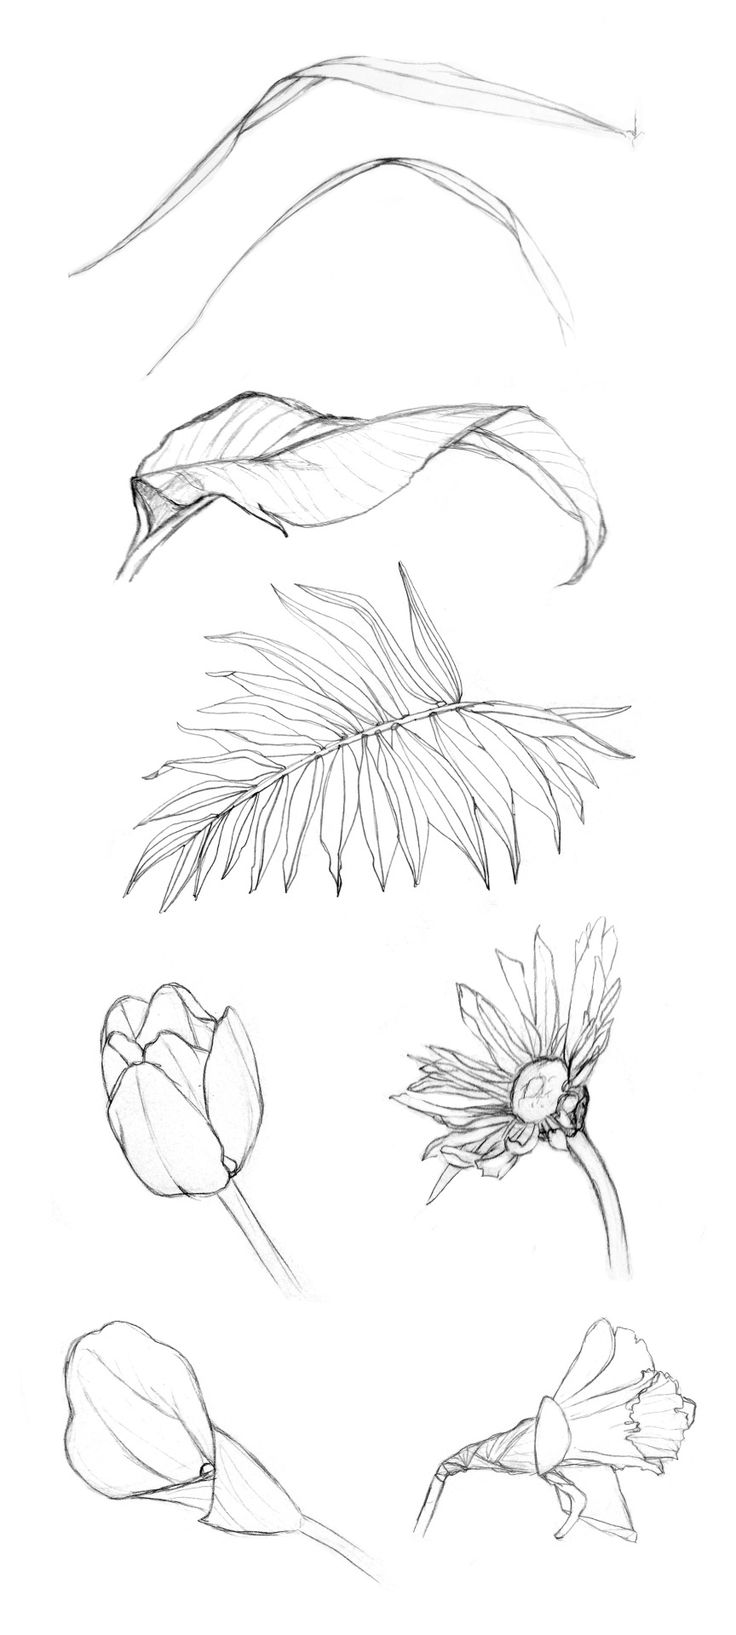 Contour Line Drawing Of A Flower : Best ideas about flower line drawings on pinterest